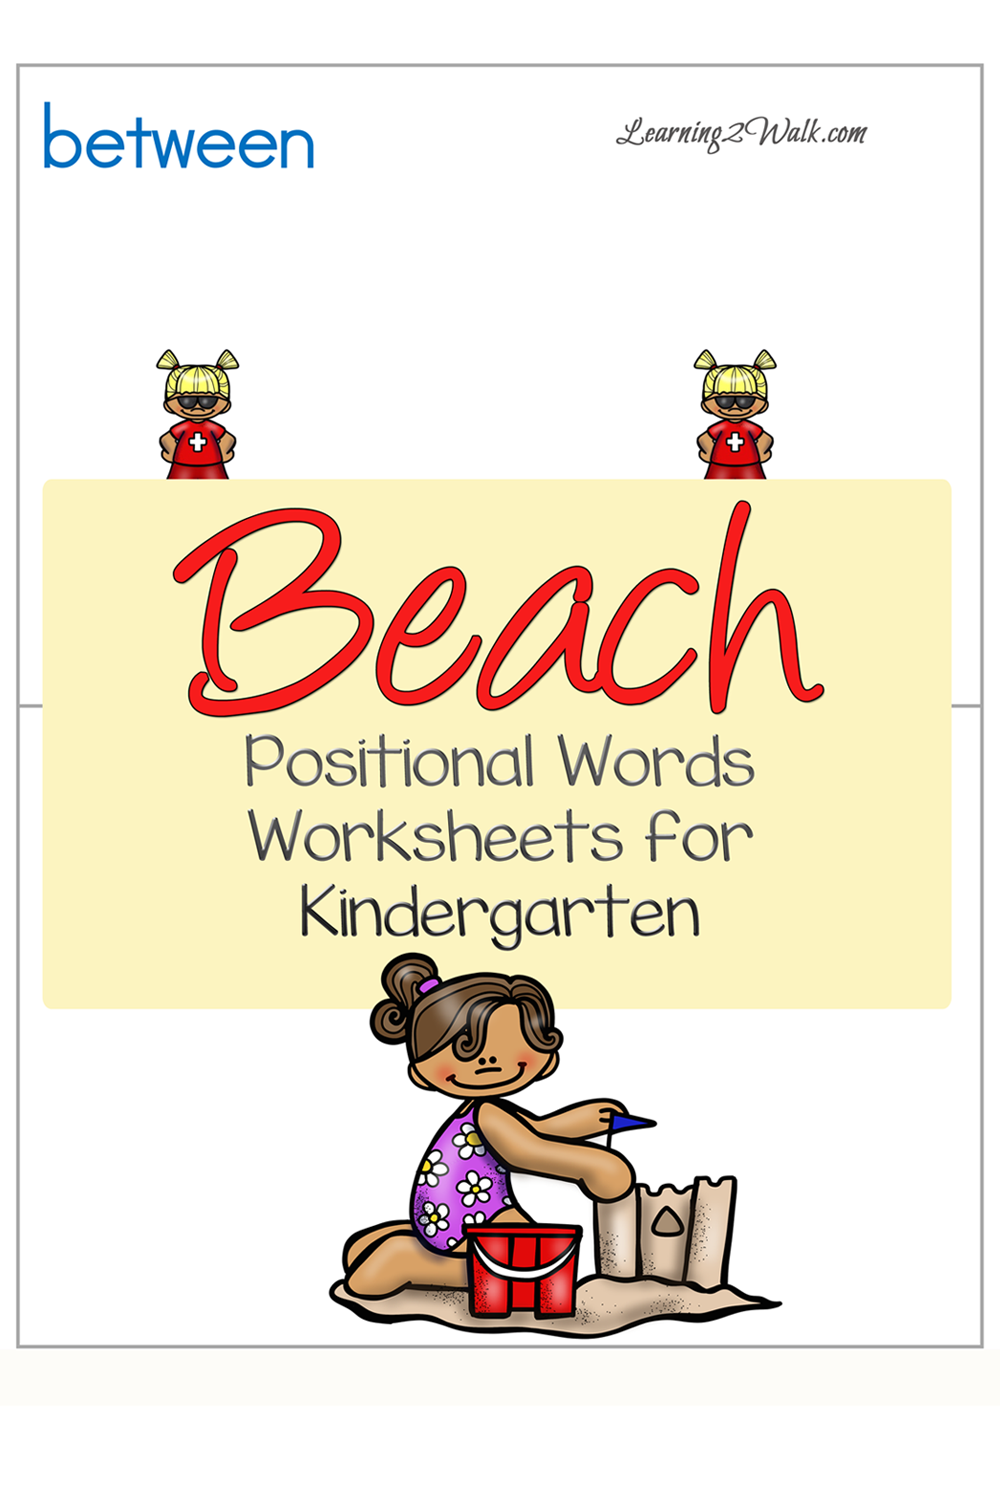 Beach Positional Words Worksheets For Kindergarten Kindergarten Worksheets Kids Learning Activities Free Printable Math Worksheets [ 1500 x 1000 Pixel ]